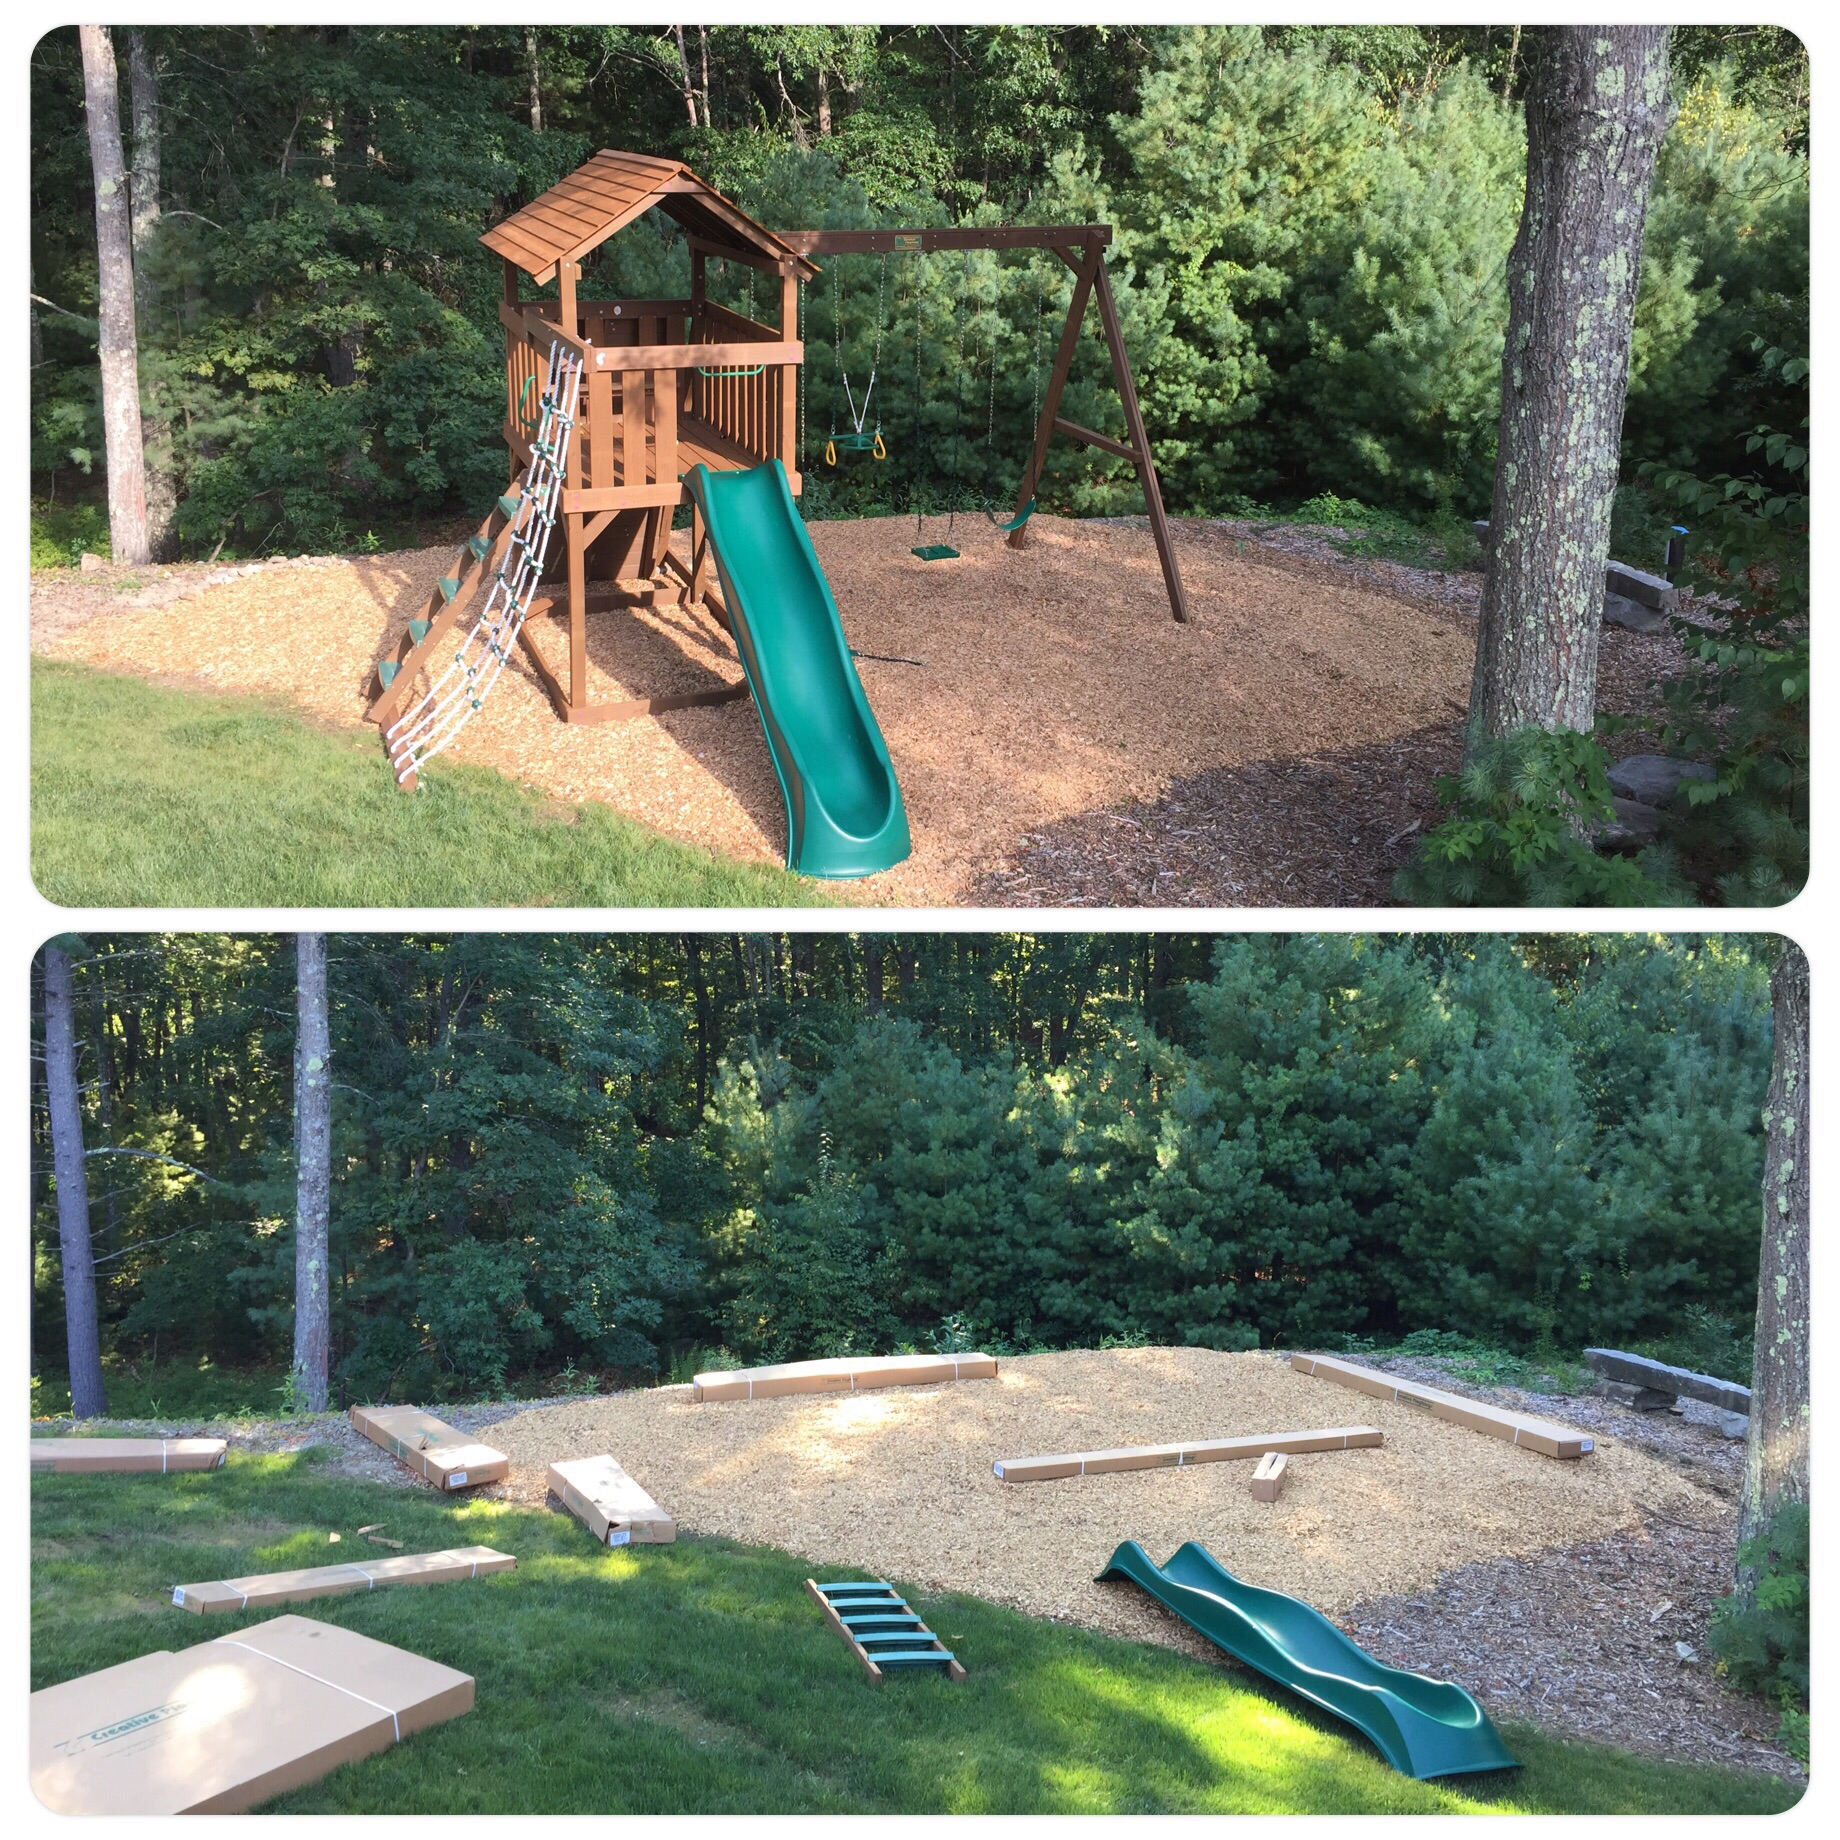 Our new play set - before and after